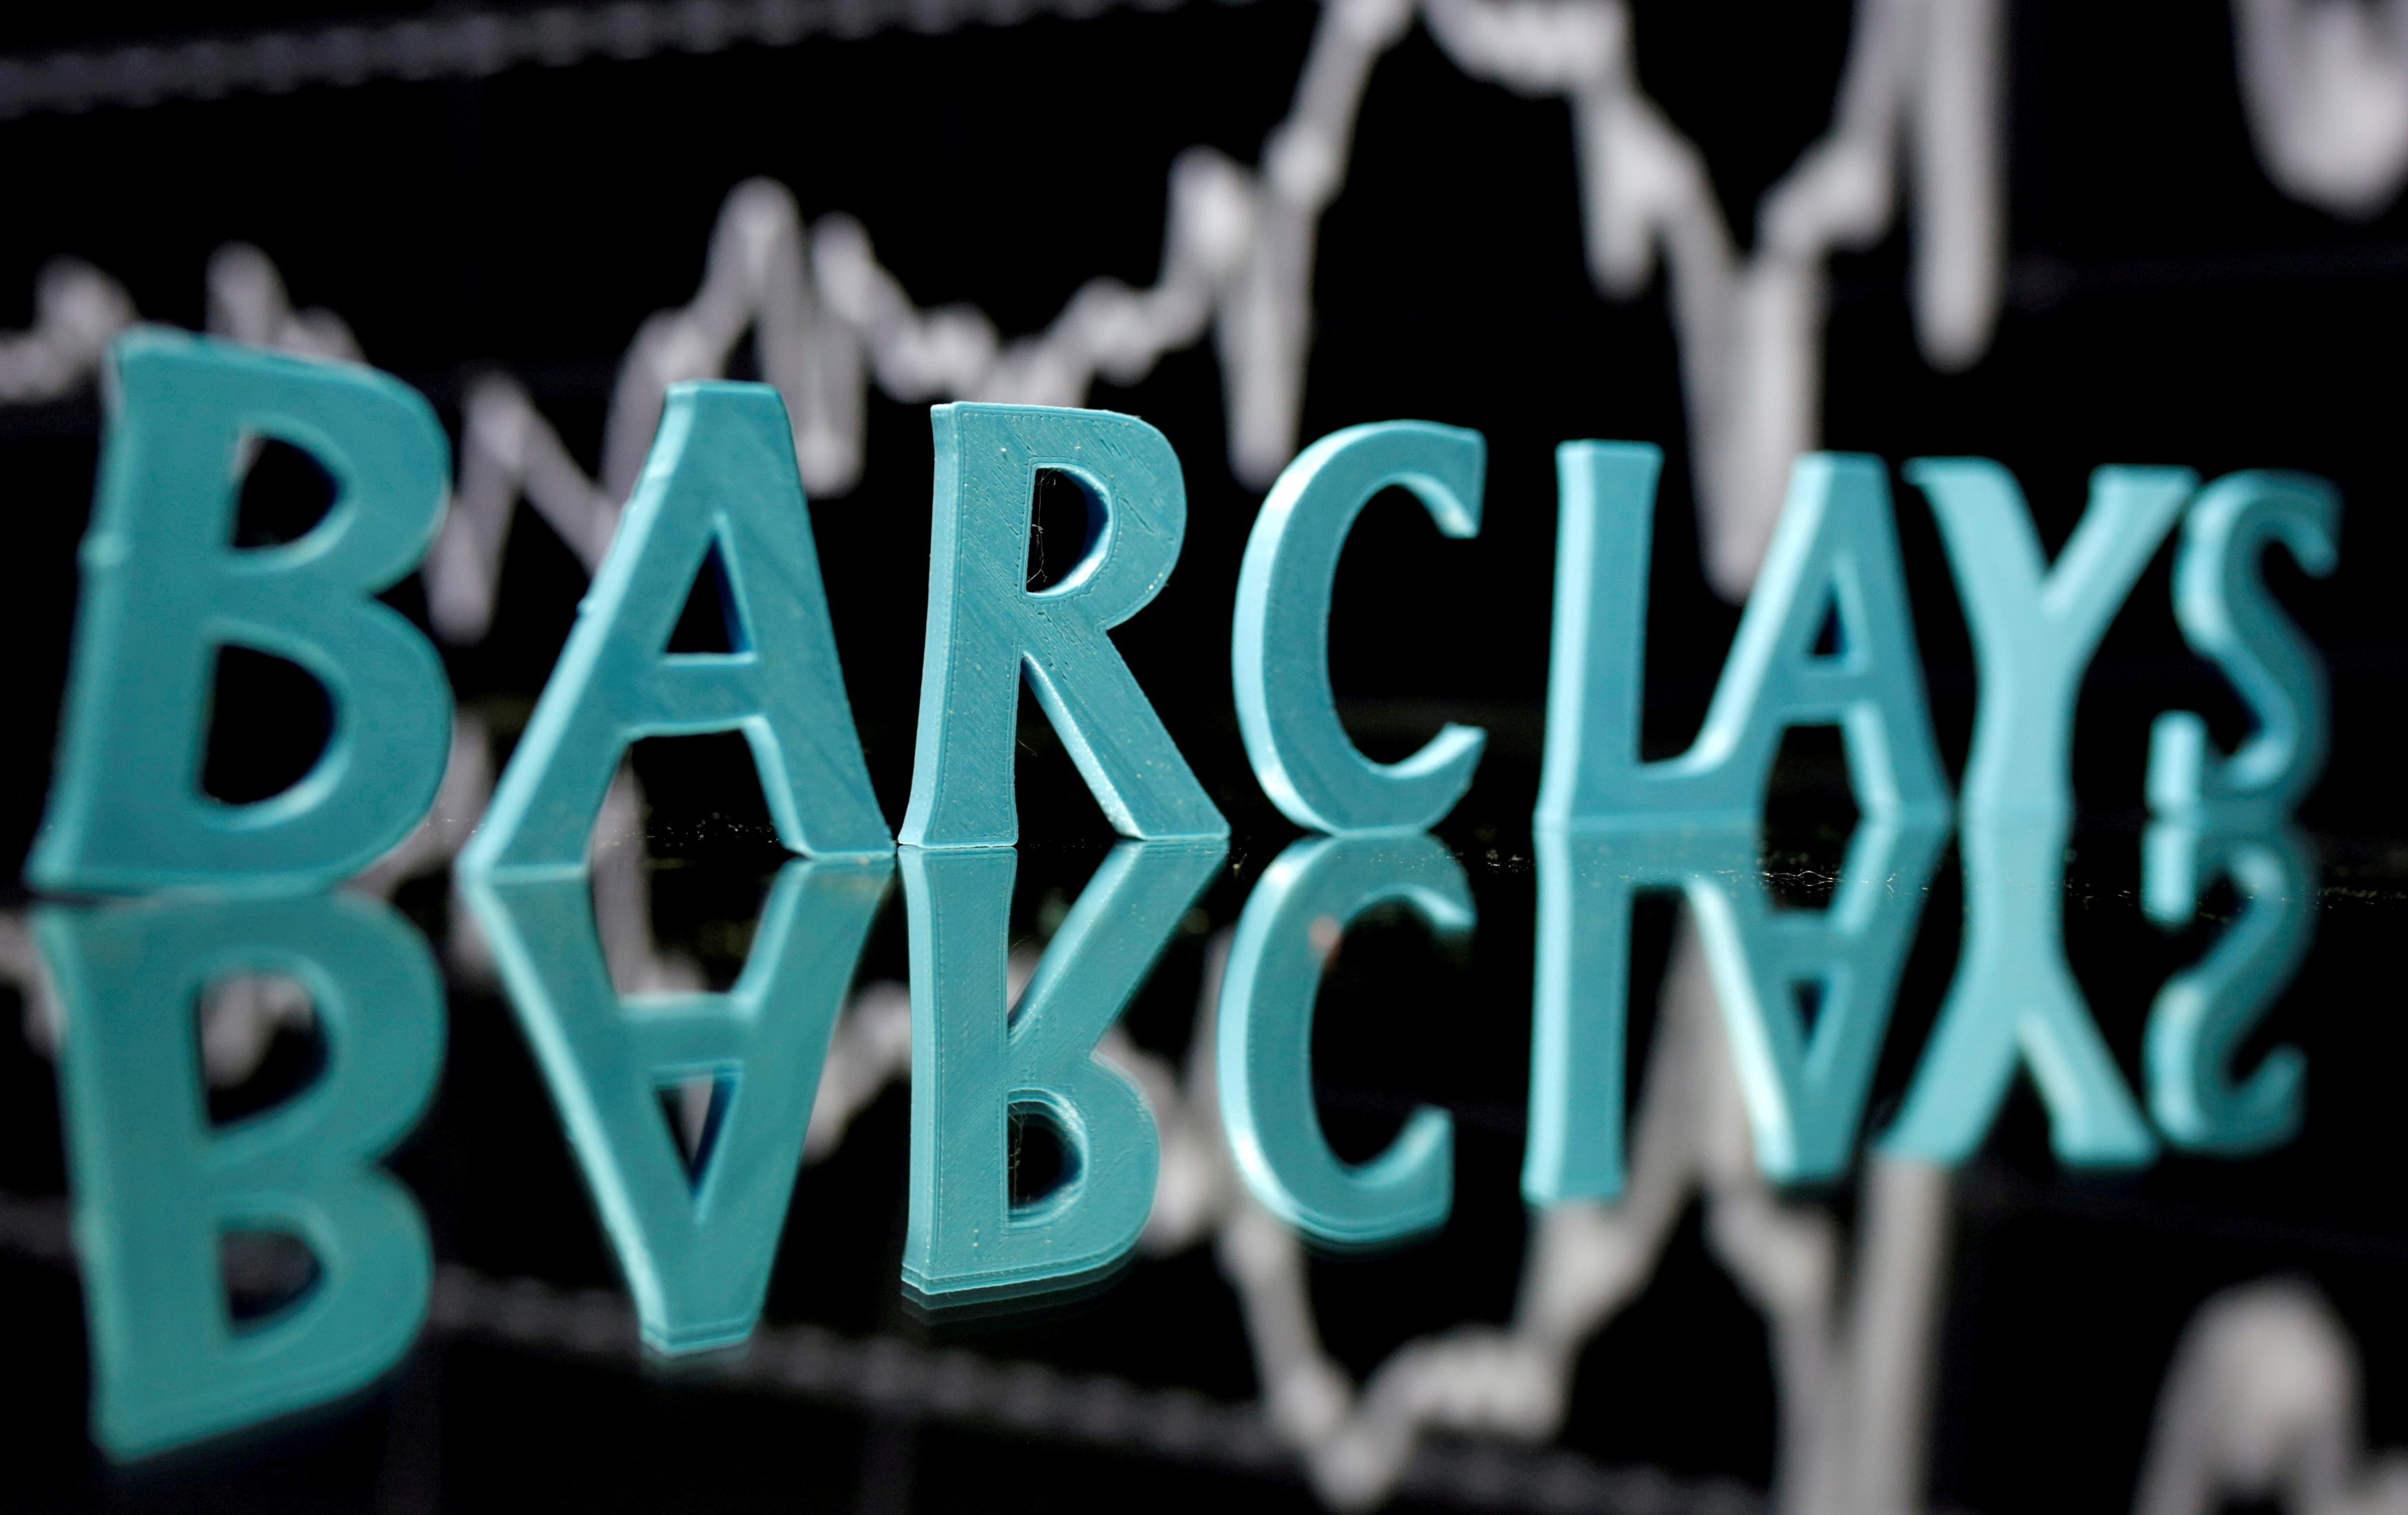 The Barclays logo is seen in front of displayed stock graph in this illustration taken June 21, 2017. REUTERS/Dado Ruvic/Illustration/File Photo